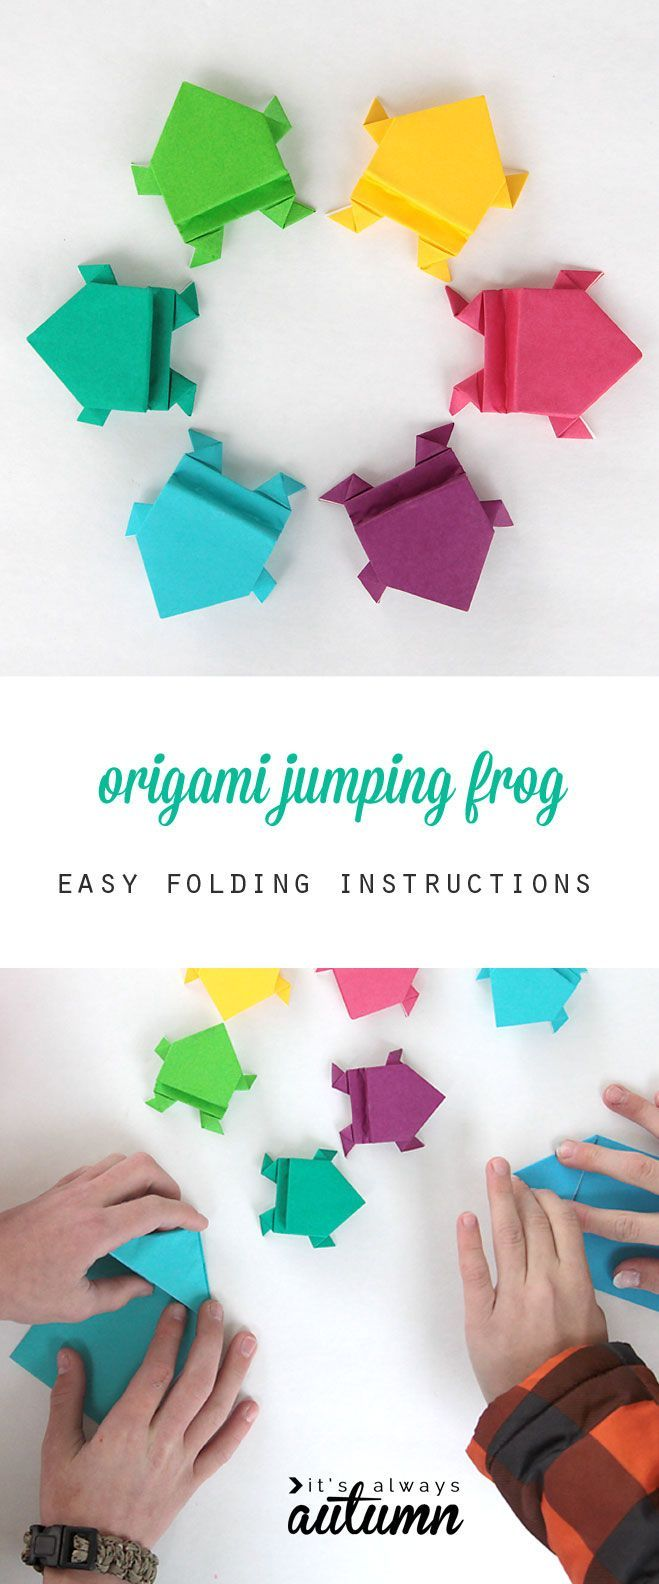 nice photo instructions show how to fold an origami jumping frog. looks easy enough for kids! great summer activity.